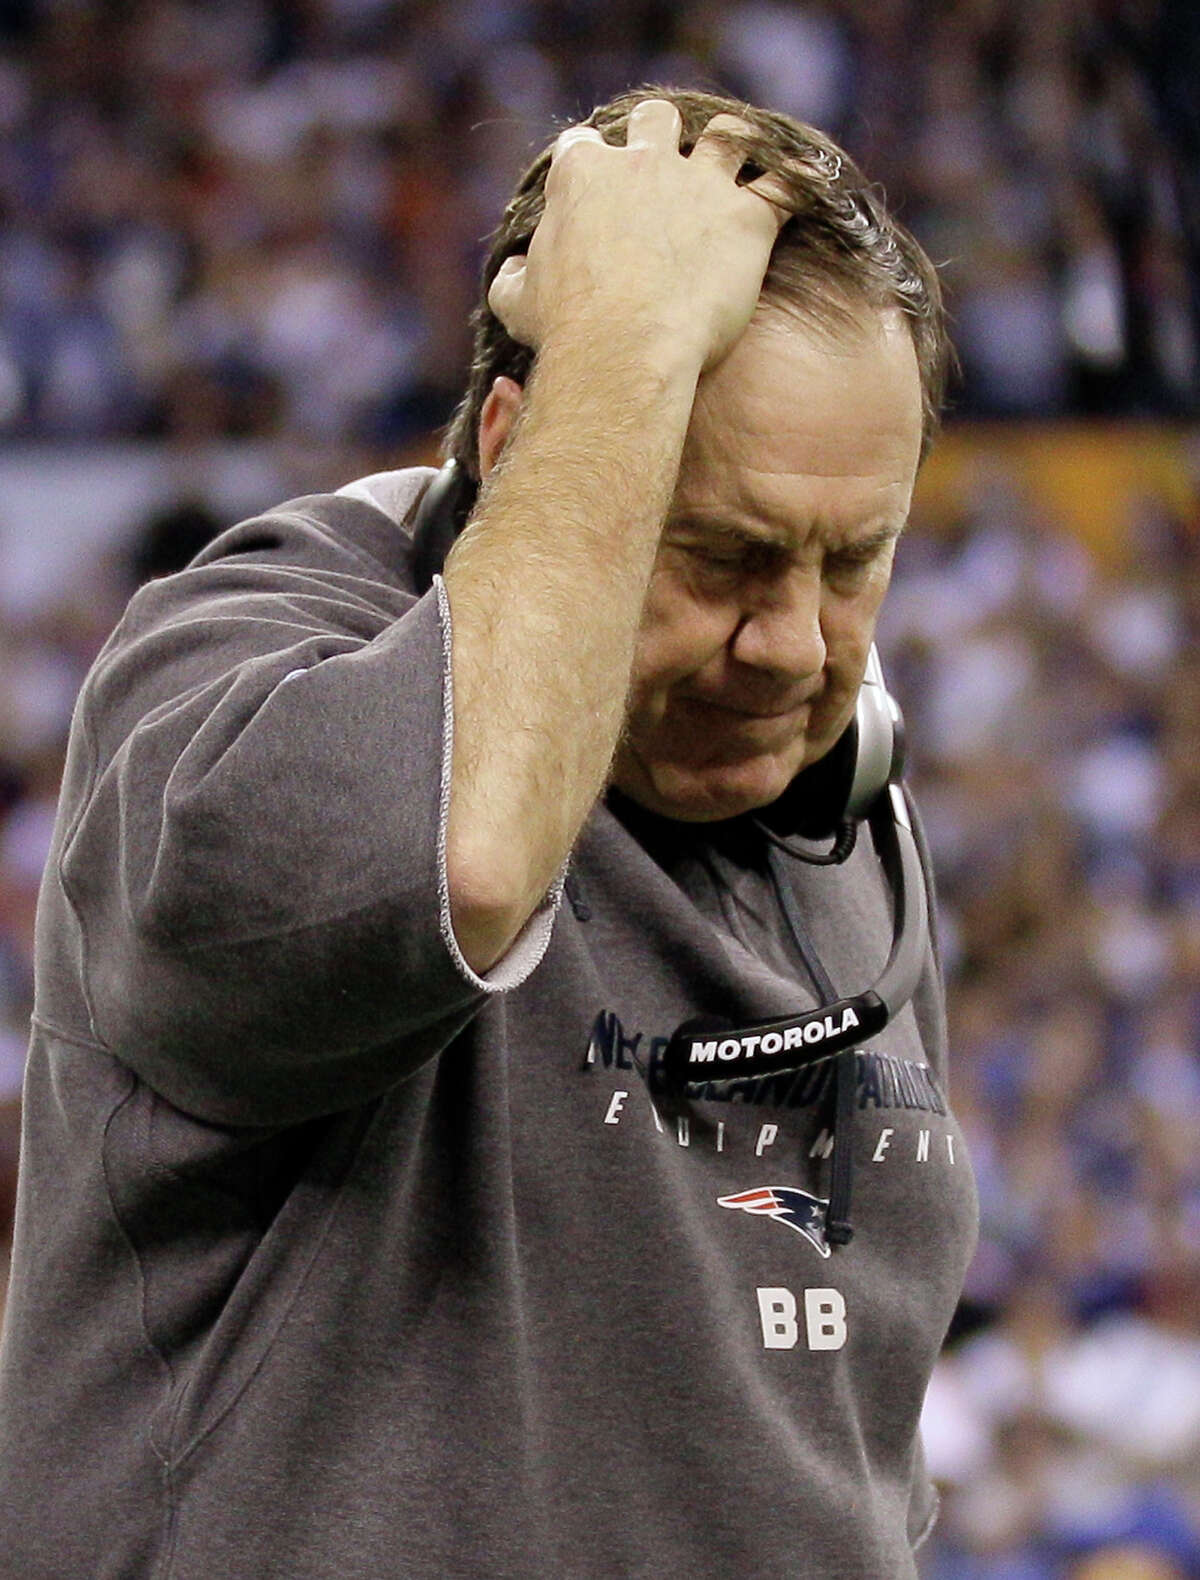 Bill Belichick -- Yes, he has three Super Bowl titles. But the biggest complaint is that he whined about the Reliant Stadium turf after the Texans' win in 2009 after Wes Welker blew out his ACL. Hey, Hoodie, it could have happened anywhere. Loser. And then his Patriots burst the Texans' 2012 Super Bowl bubble, handing Houston a 41-28 loss in the divisional round.